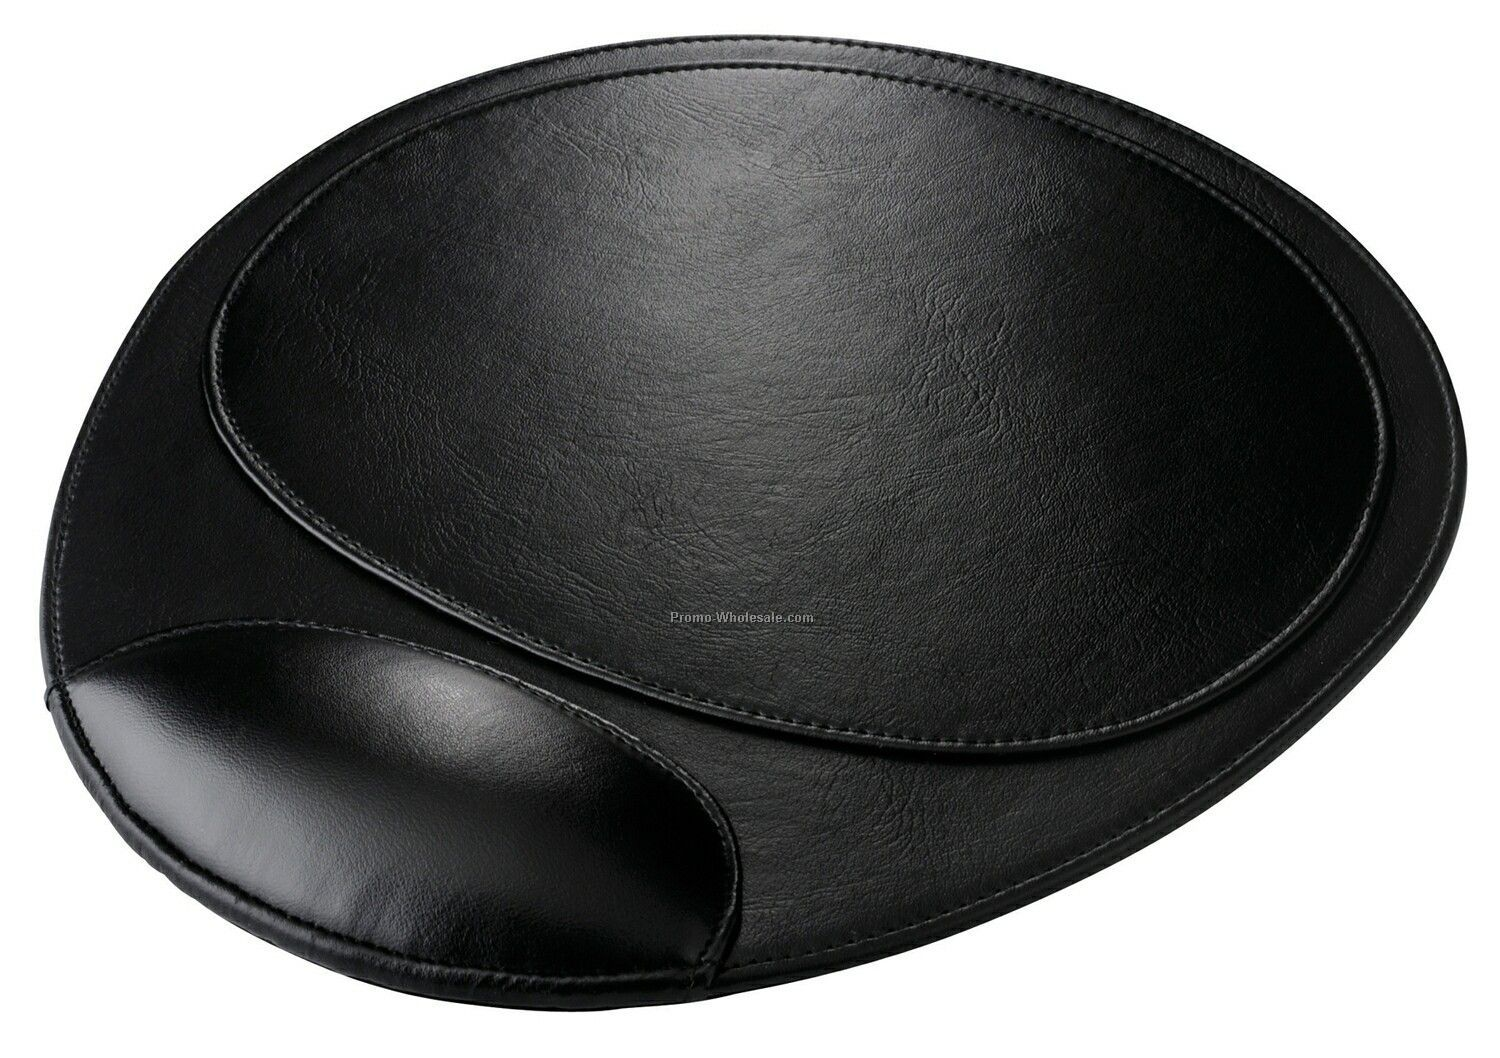 Leatherette Mouse Pad/ Wrist Rest